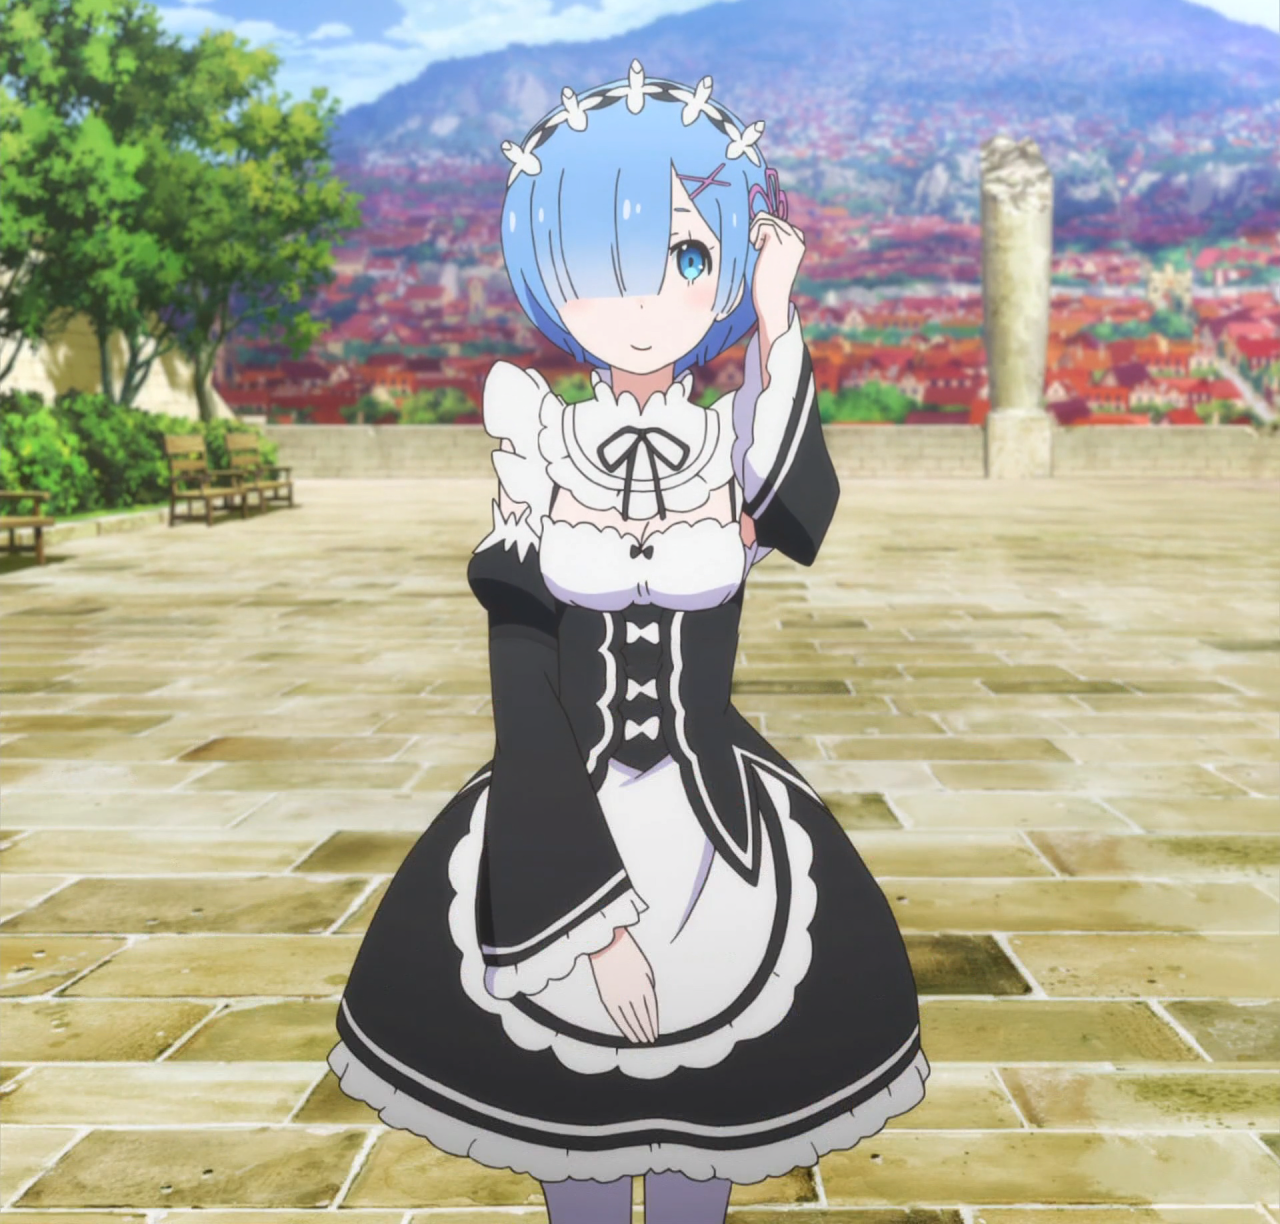 Rem Re Zero Animevice Wiki Fandom Powered By Wikia